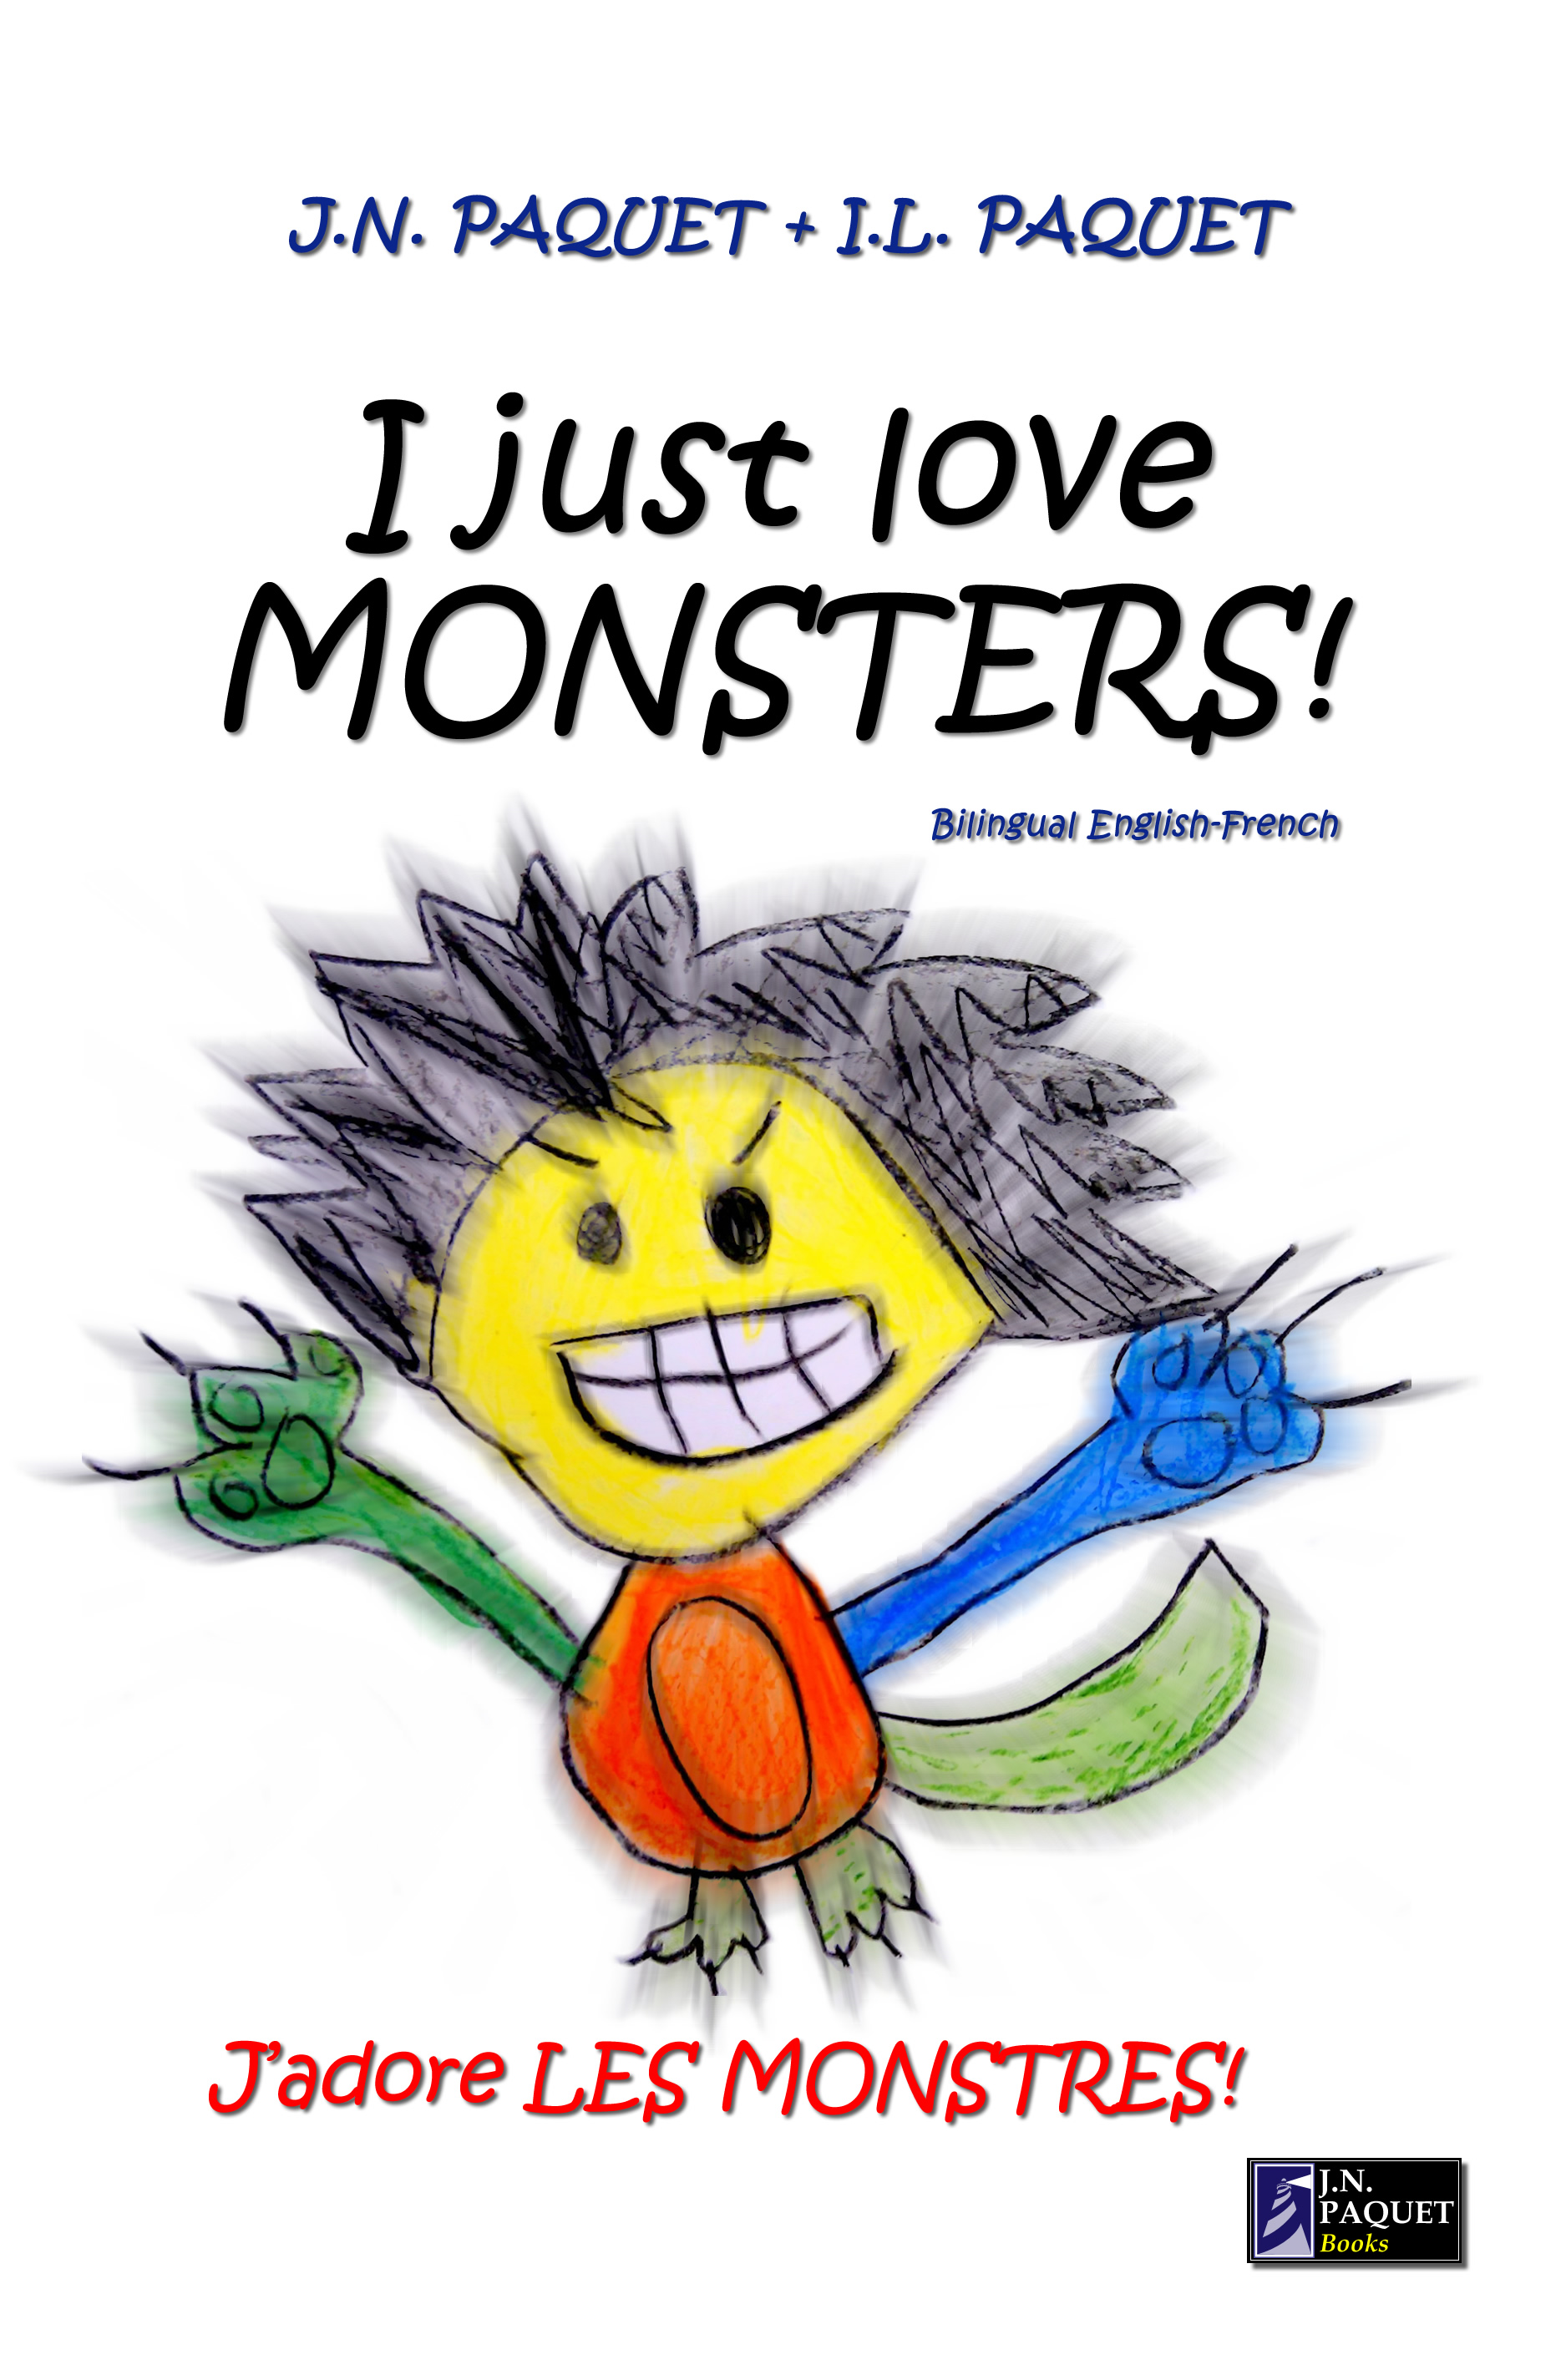 I Just Love MONSTERS! (Bilingual English-French) By: J.N. PAQUET